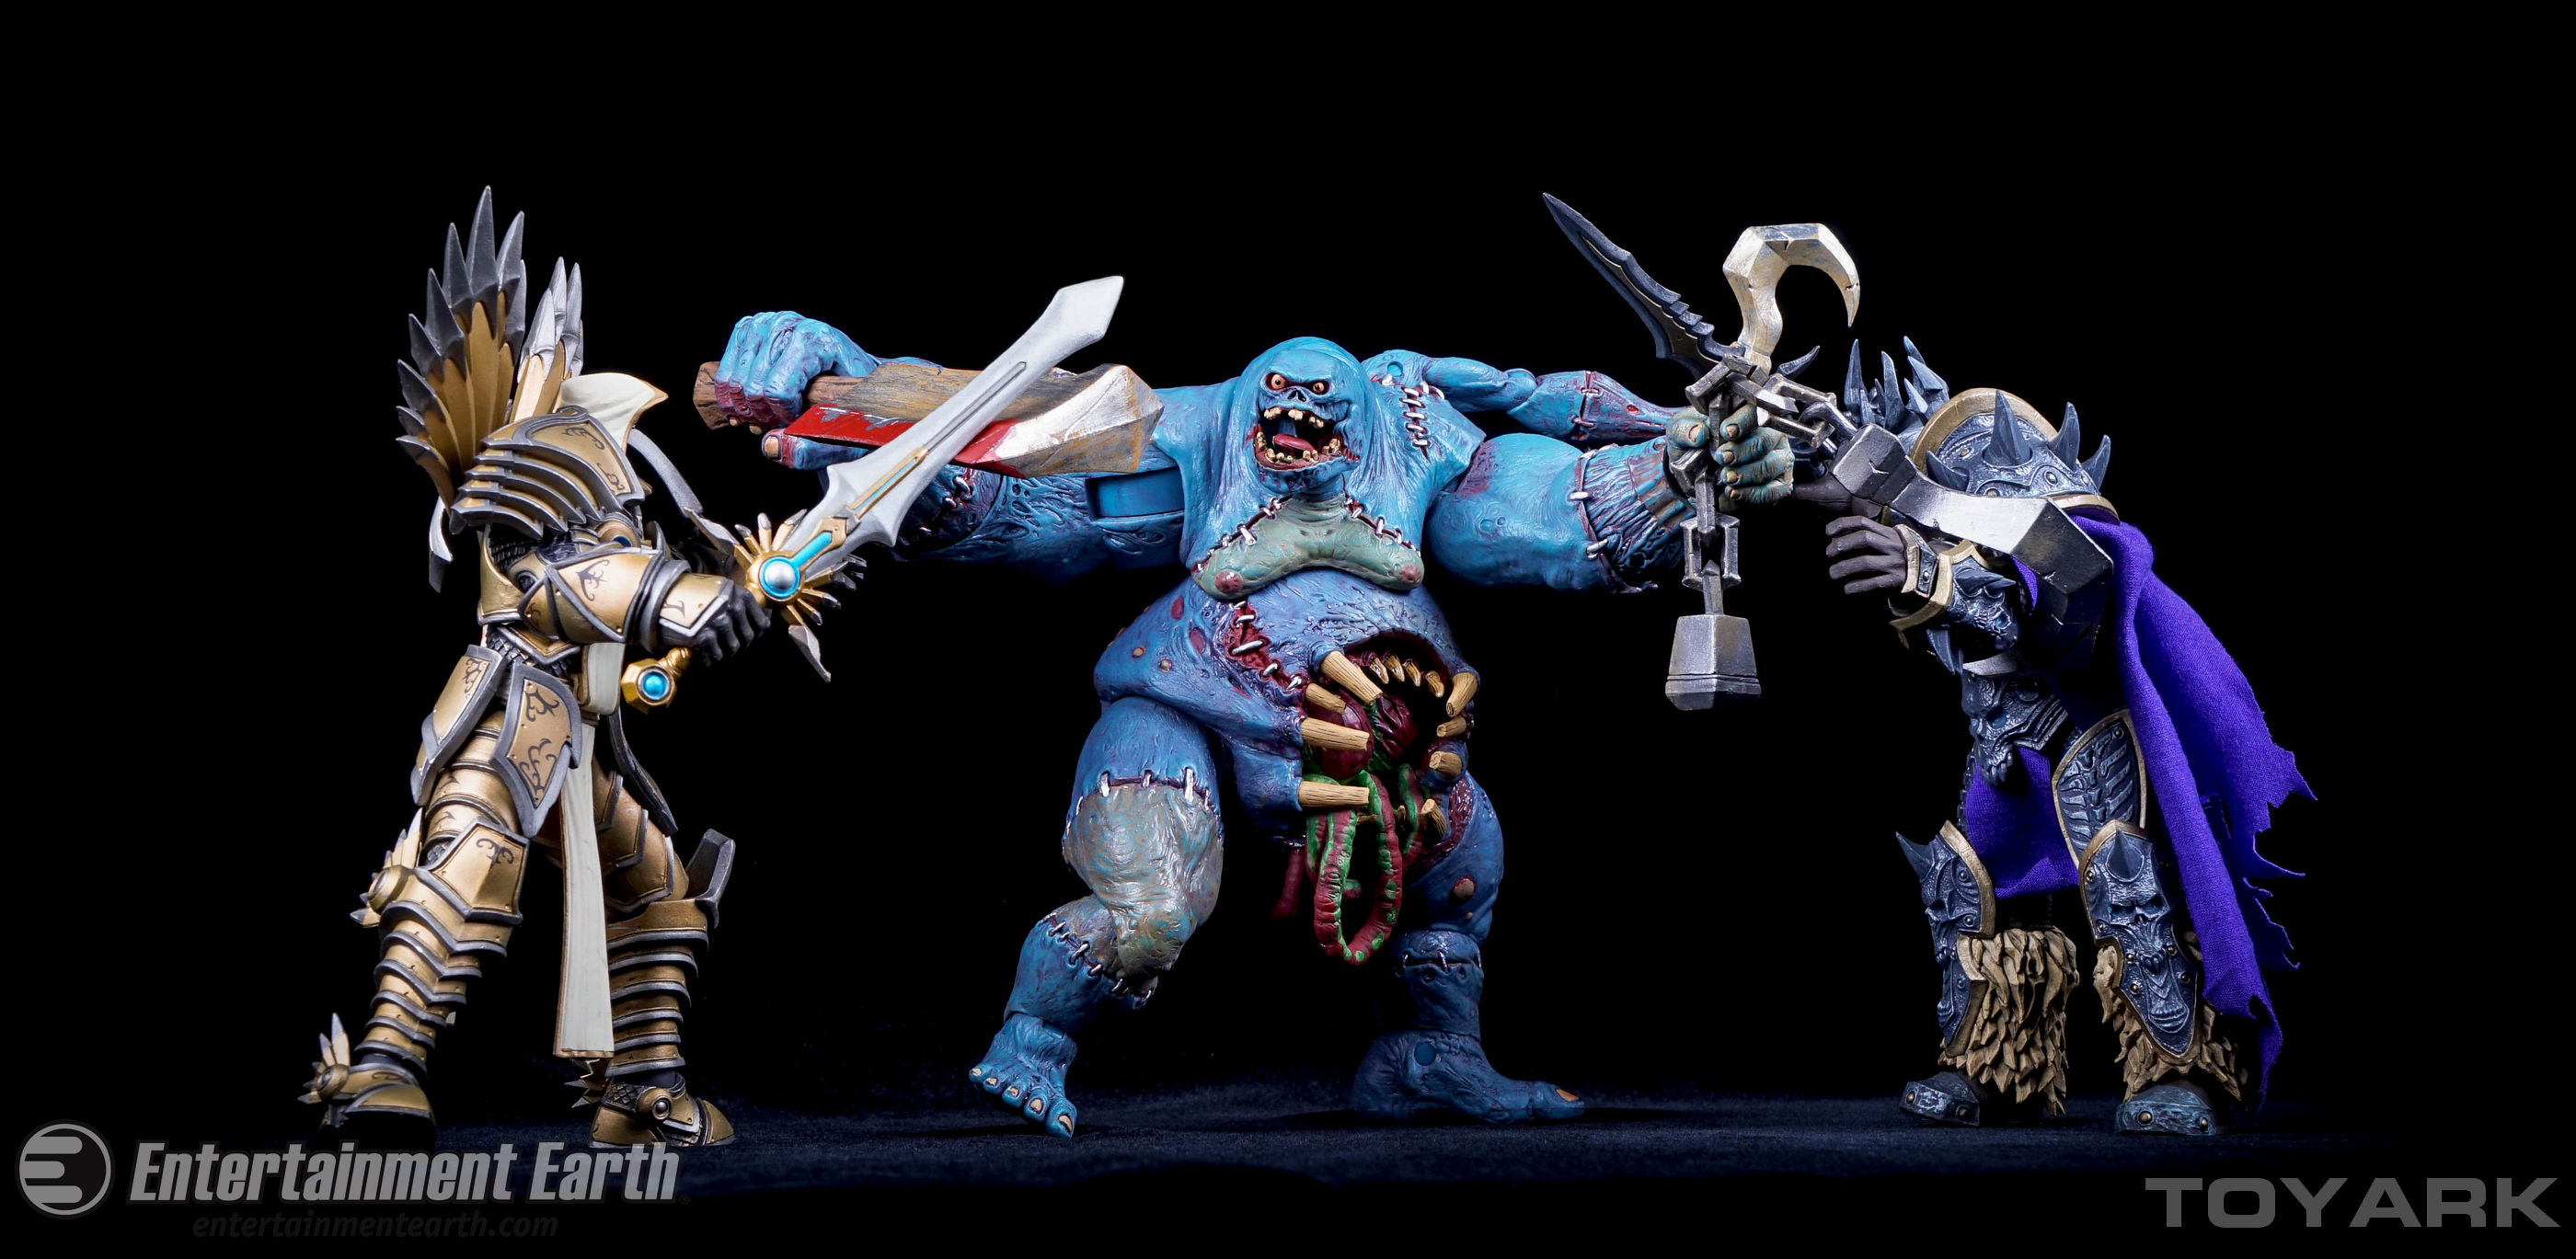 http://news.toyark.com/wp-content/uploads/sites/4/2016/01/NECA-HOTS-Stitches-047.jpg